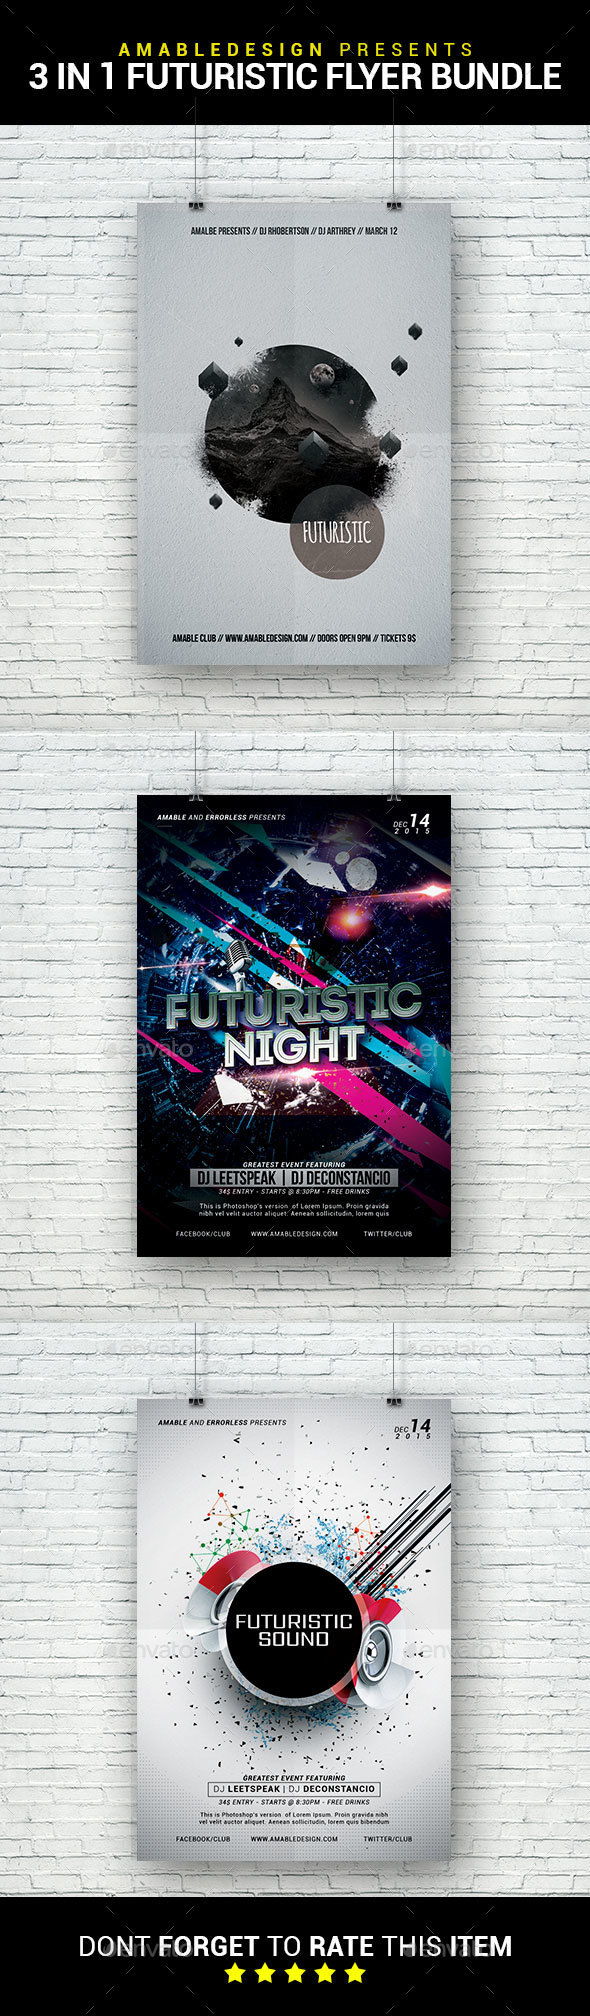 3 in 1 Futuristic Party Flyer/Poster Bundle - Clubs & Parties Events